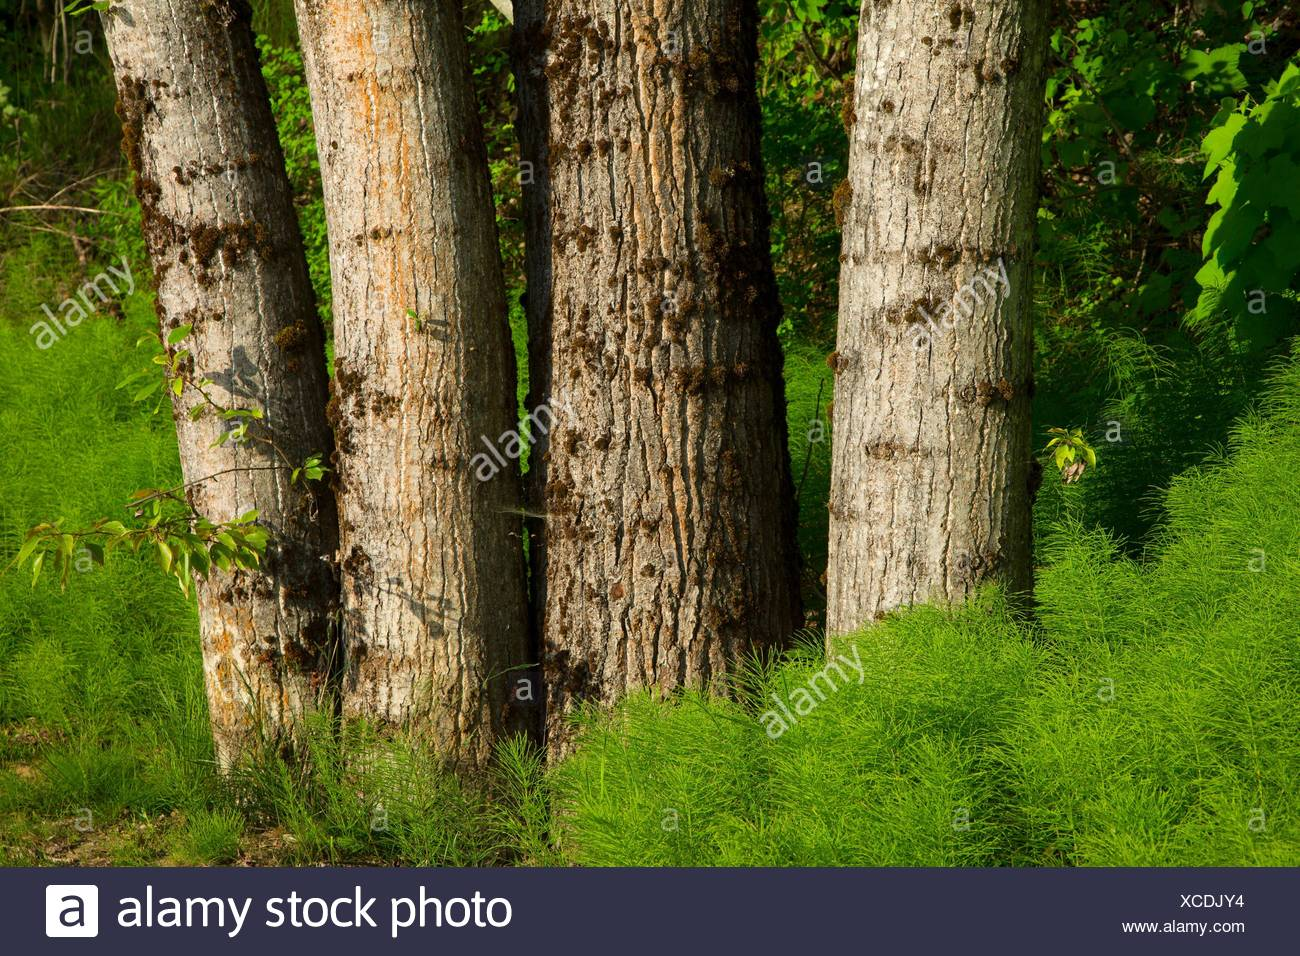 Cottonwood trunks along Pend dâ.Oreille Bay Trail, Sandpoint, Idaho. - Stock Image